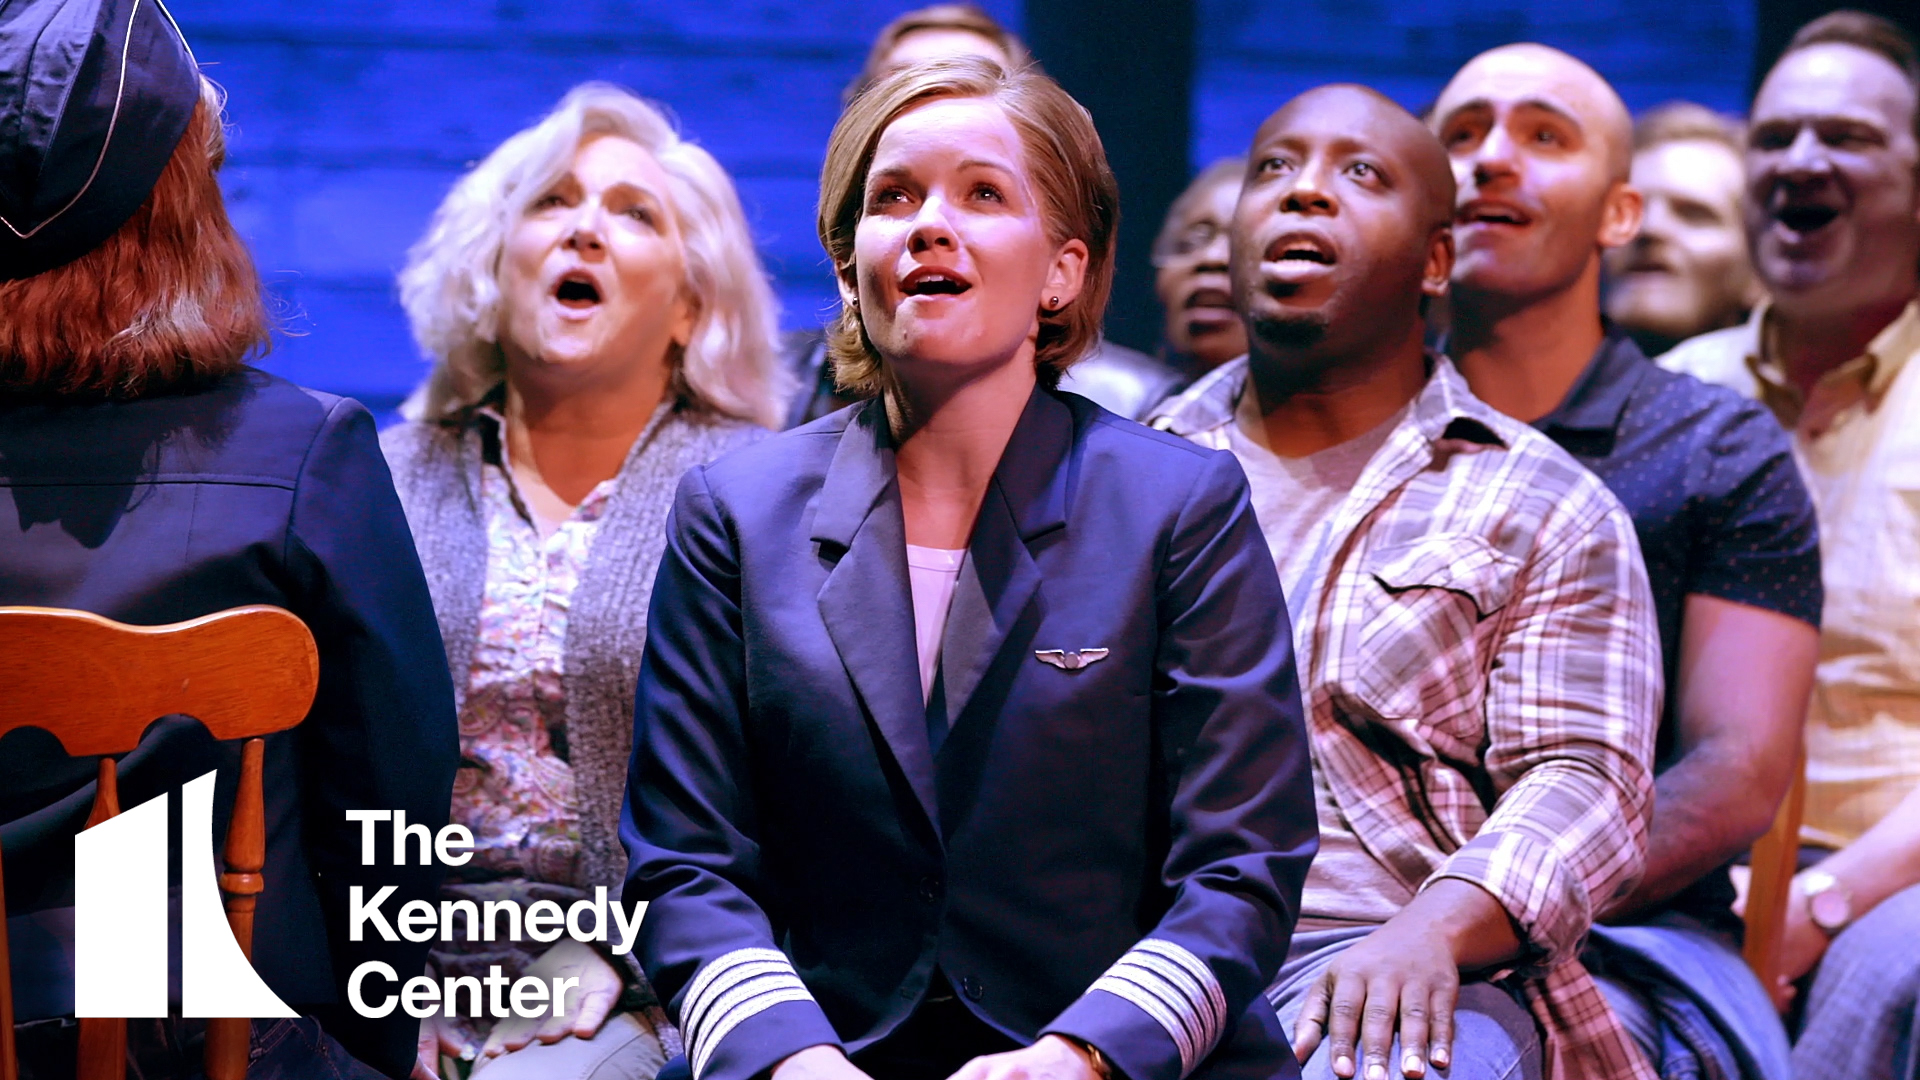 Come From Away | Trailer | The Kennedy Center